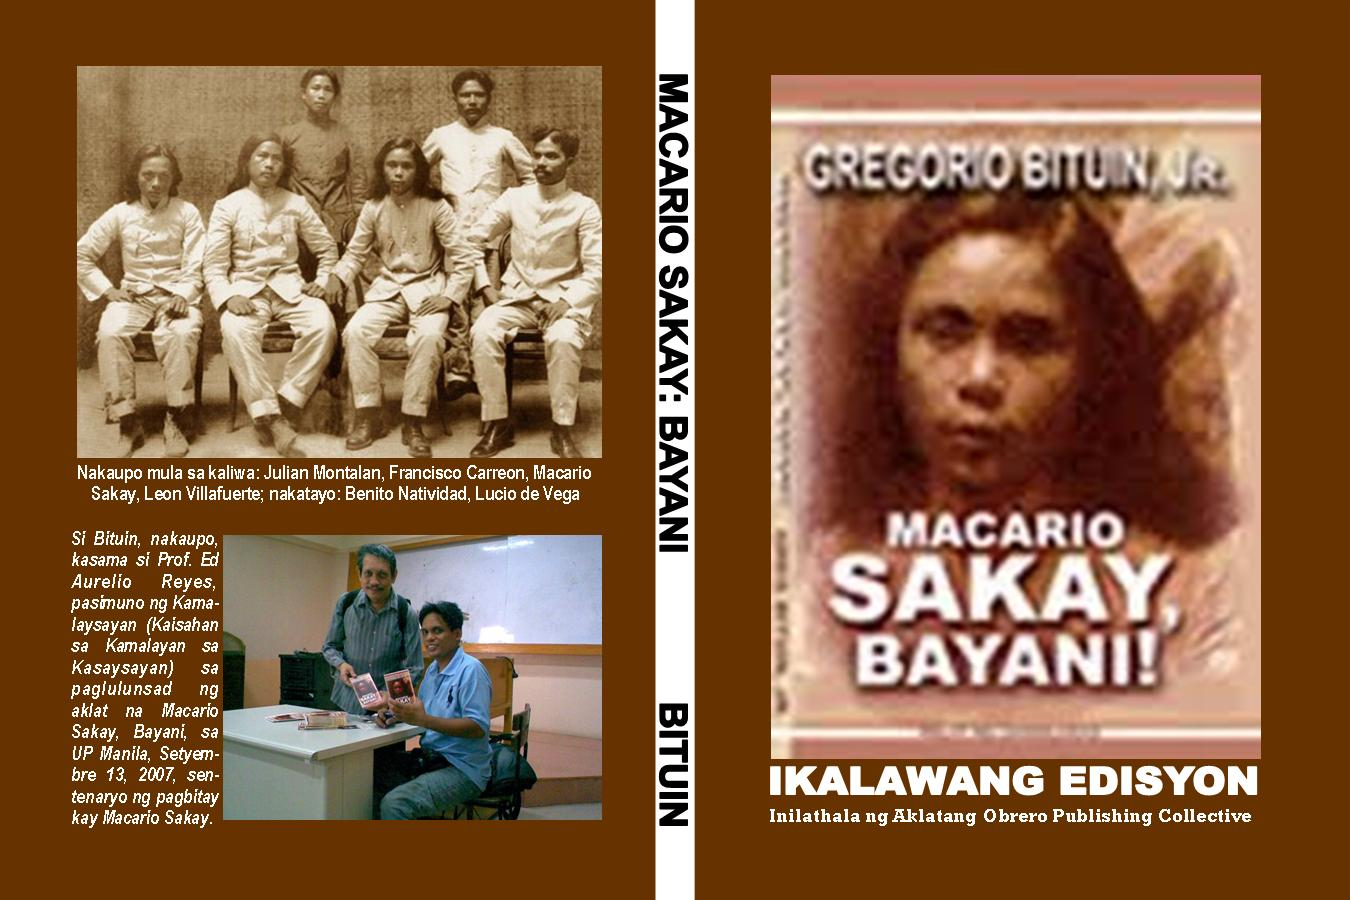 macario sakay movie reaction Macario sakay movie reaction macario sakay y de león (1870 – september 13, 1907) was a filipino general in the philippine revolution against spain and in the philippine-american war.